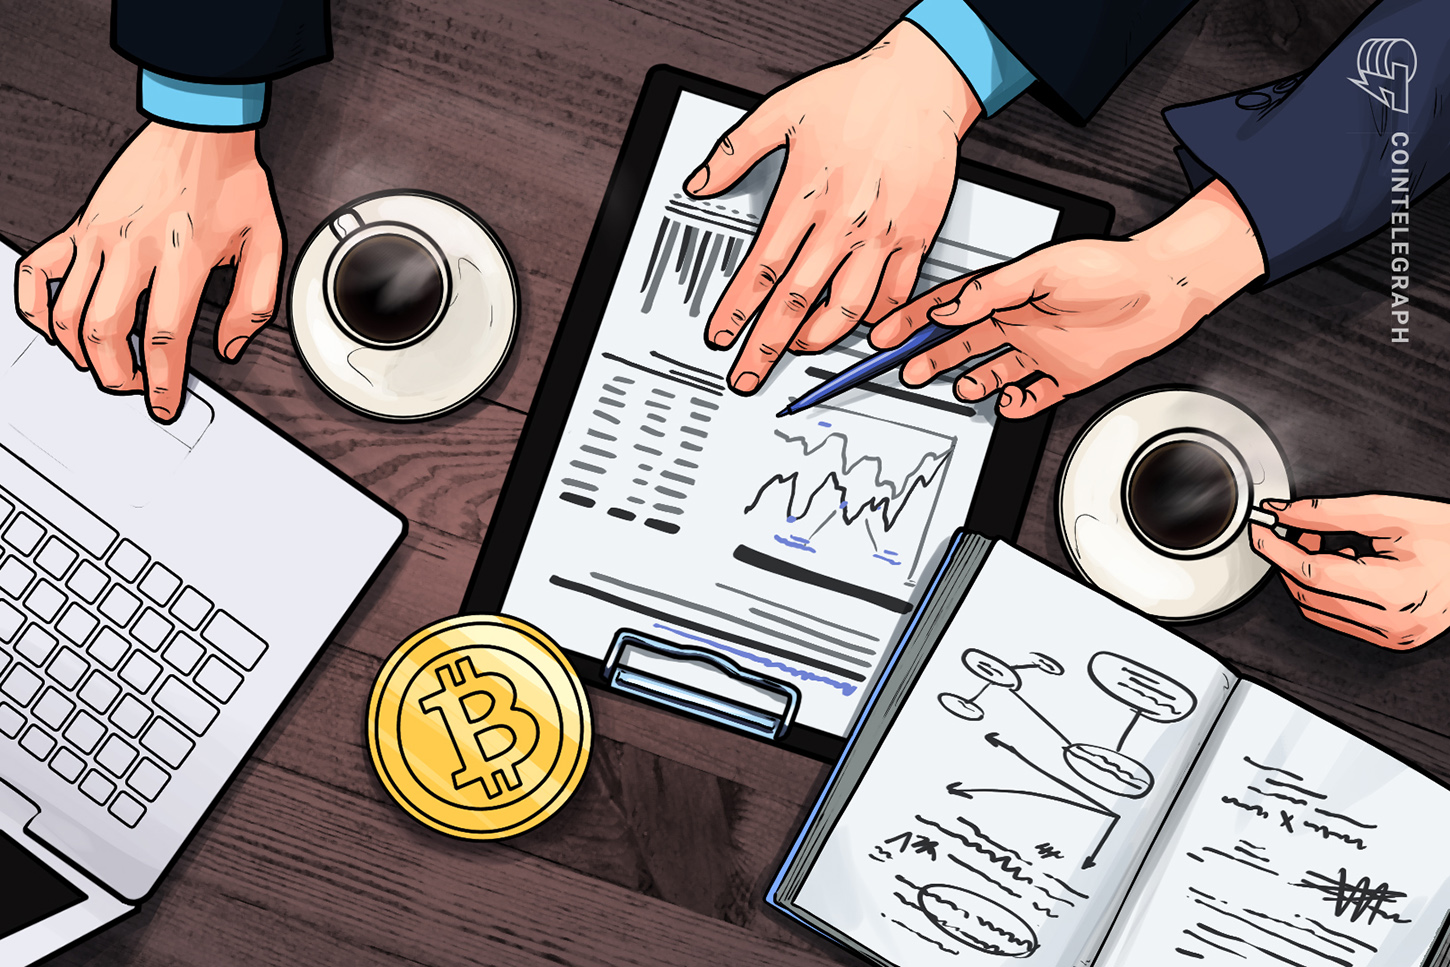 Bitcoin exchange reserves near record low with traders eyeing $43K BTC price support